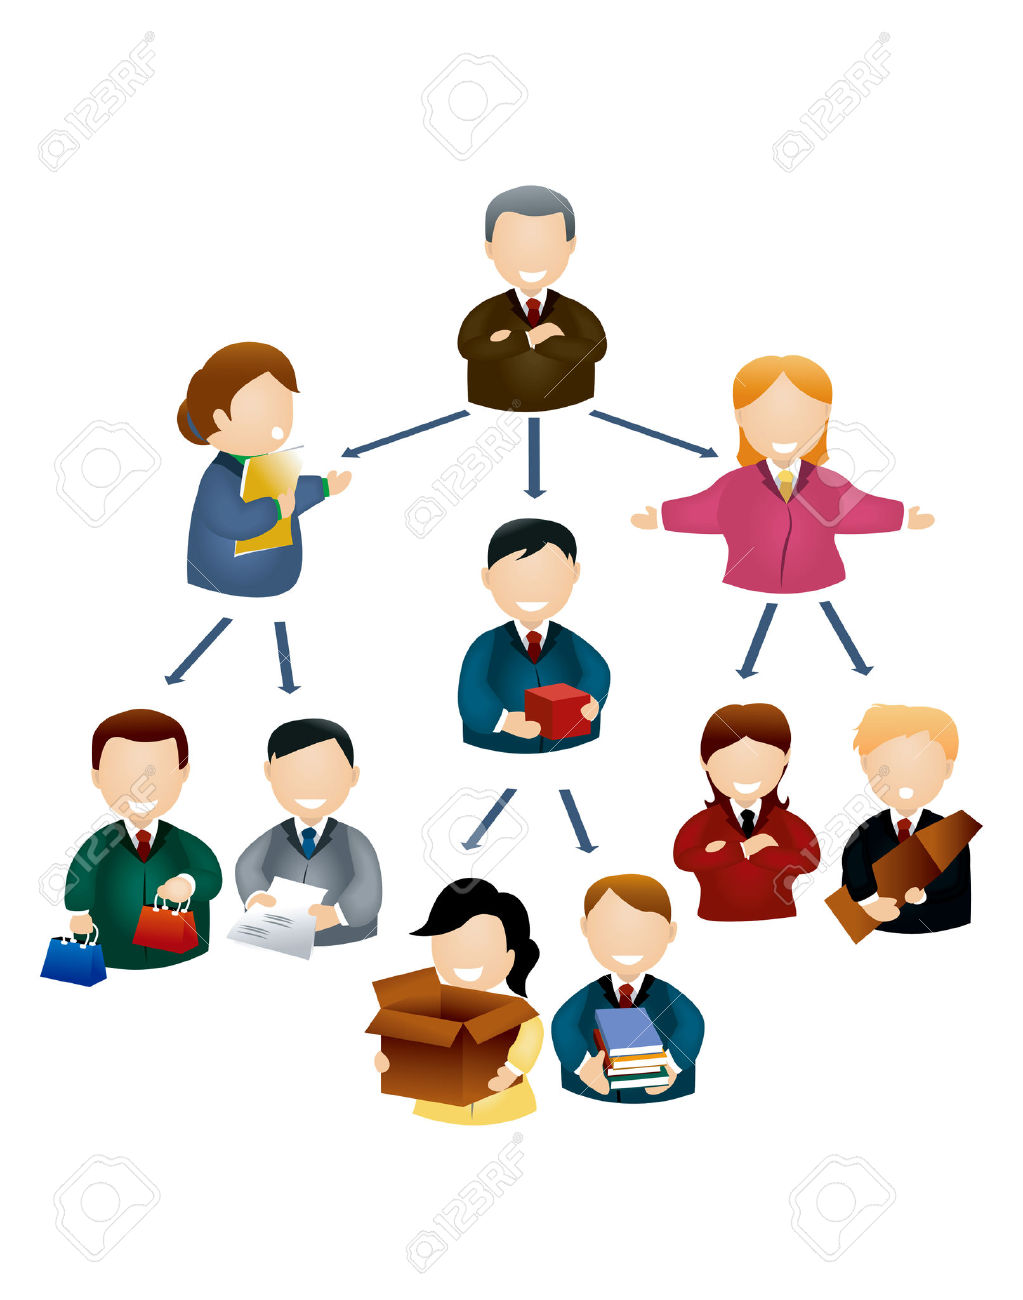 Overview clipart organization Clipart Family Clipart Cartoon ClipartMe